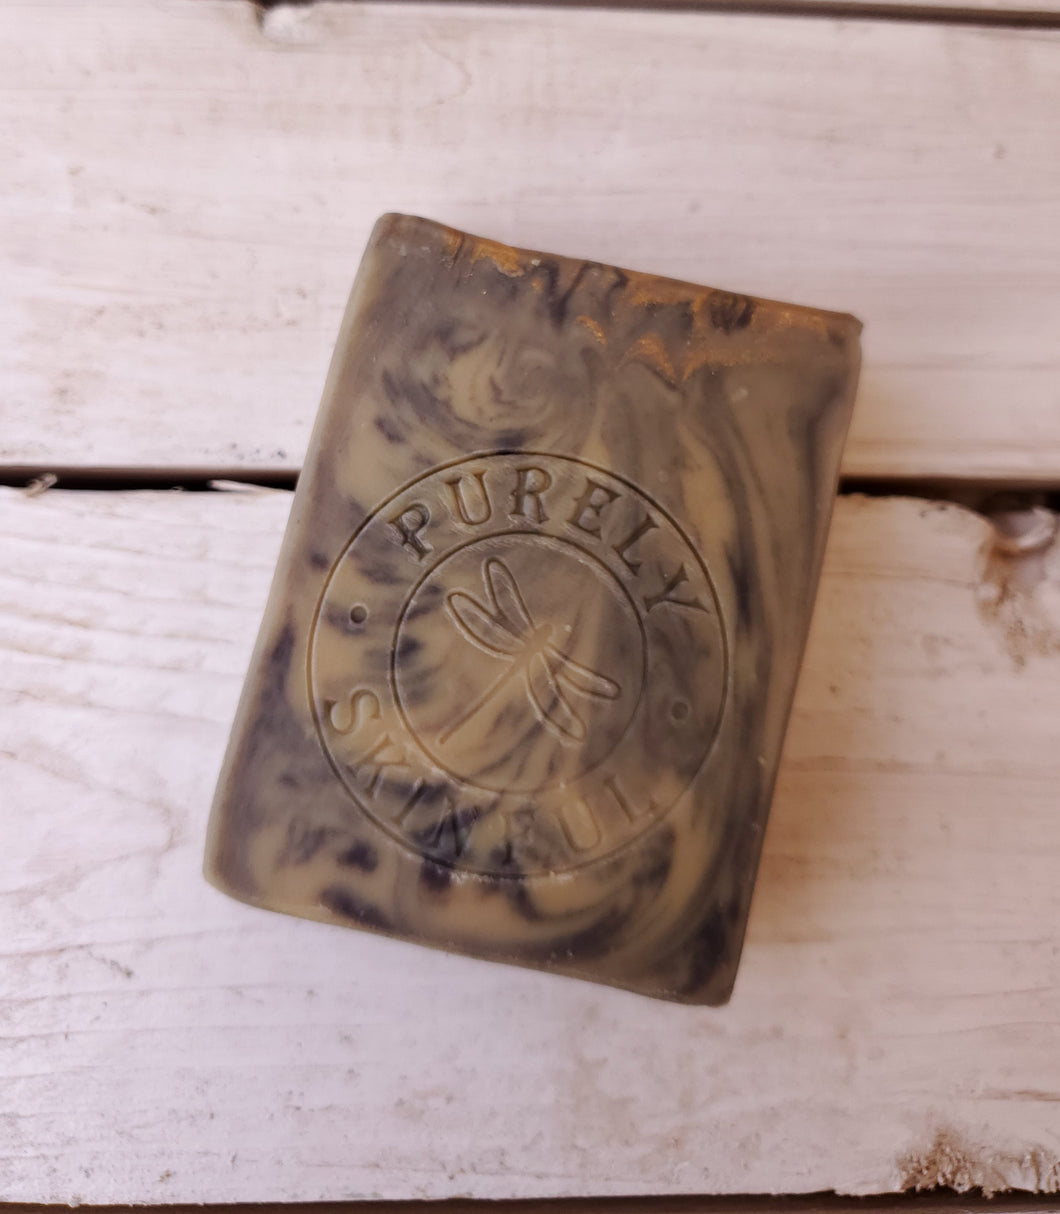 Tuscany Bath & Body Soap